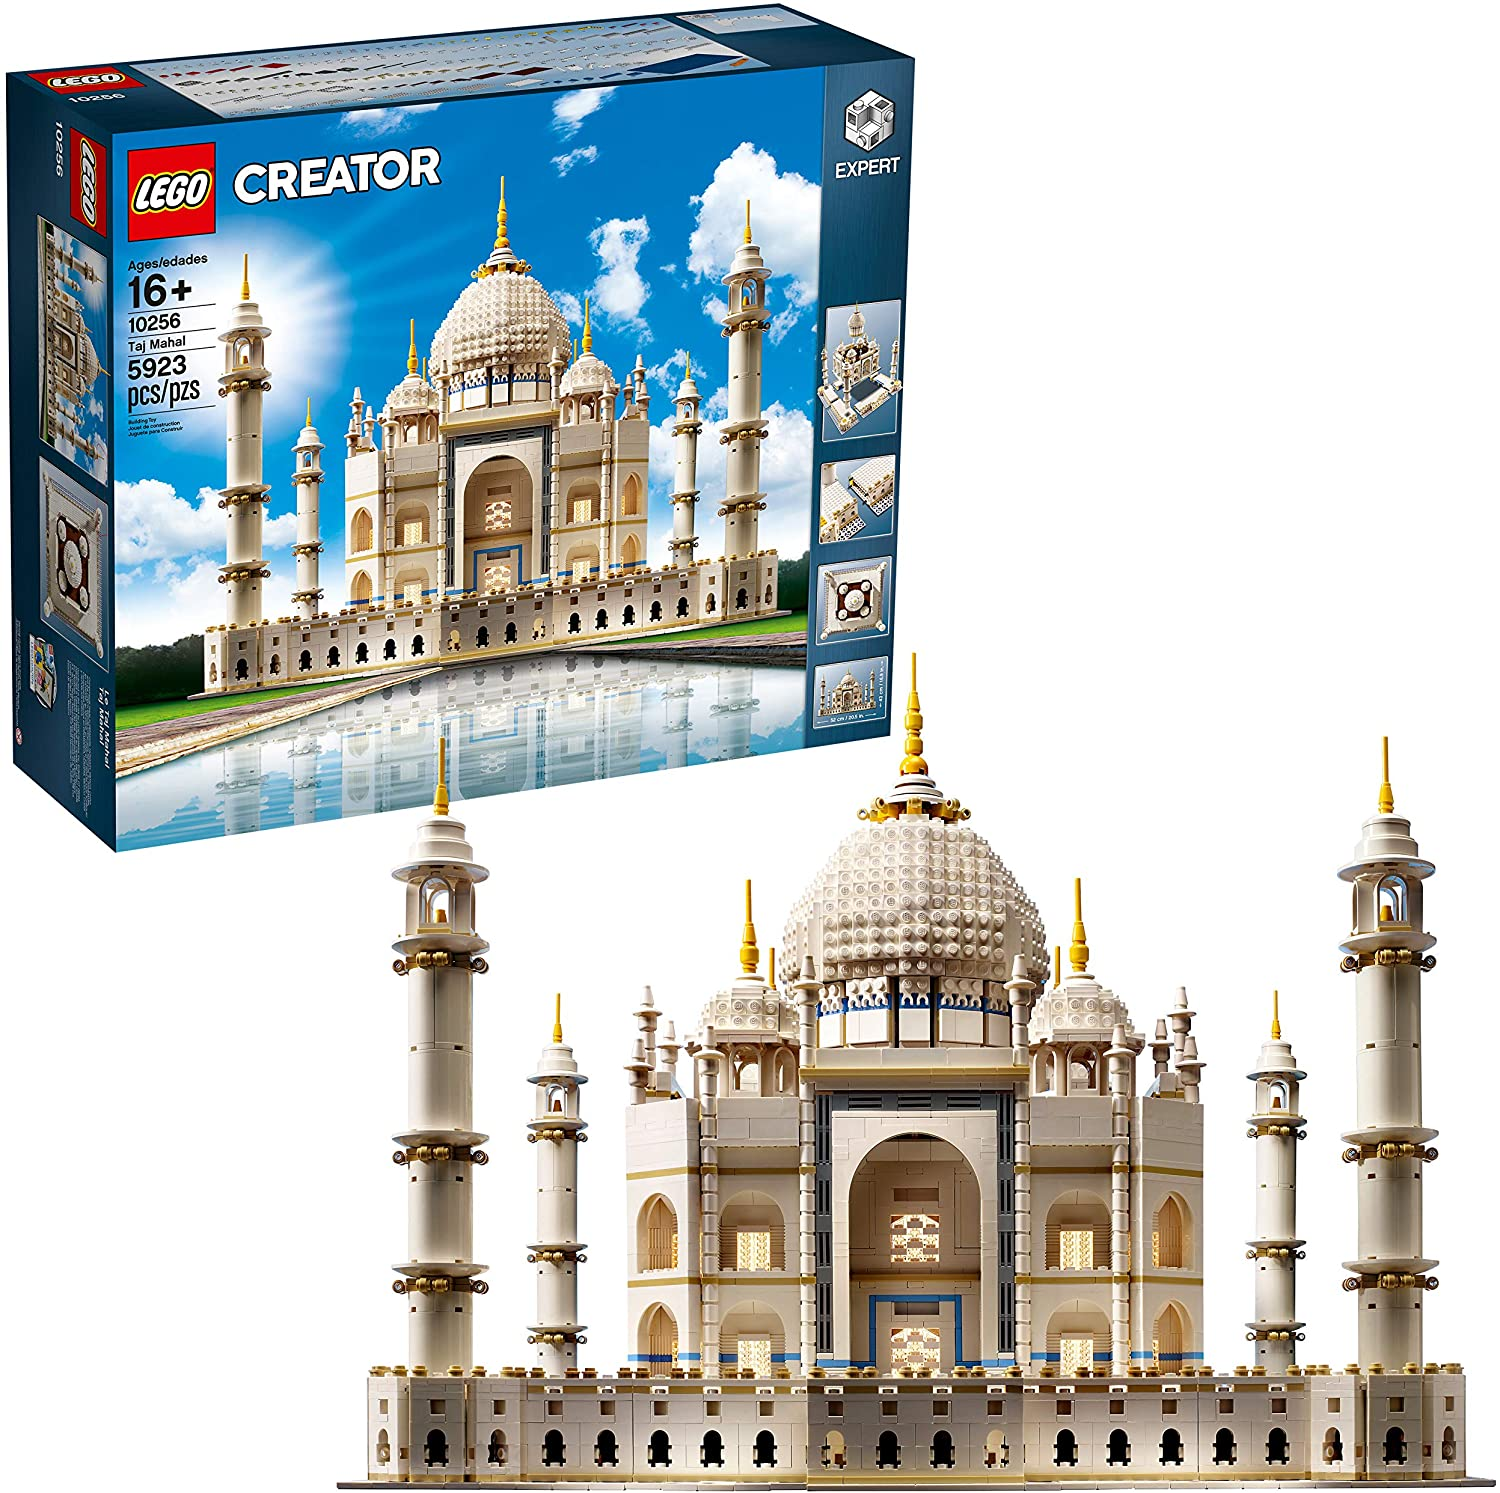 LEGO Creator Expert Taj Mahal 10256 Building Kit and Architecture Model, Perfect Set for Older Kids and Adults (5923 Pieces)